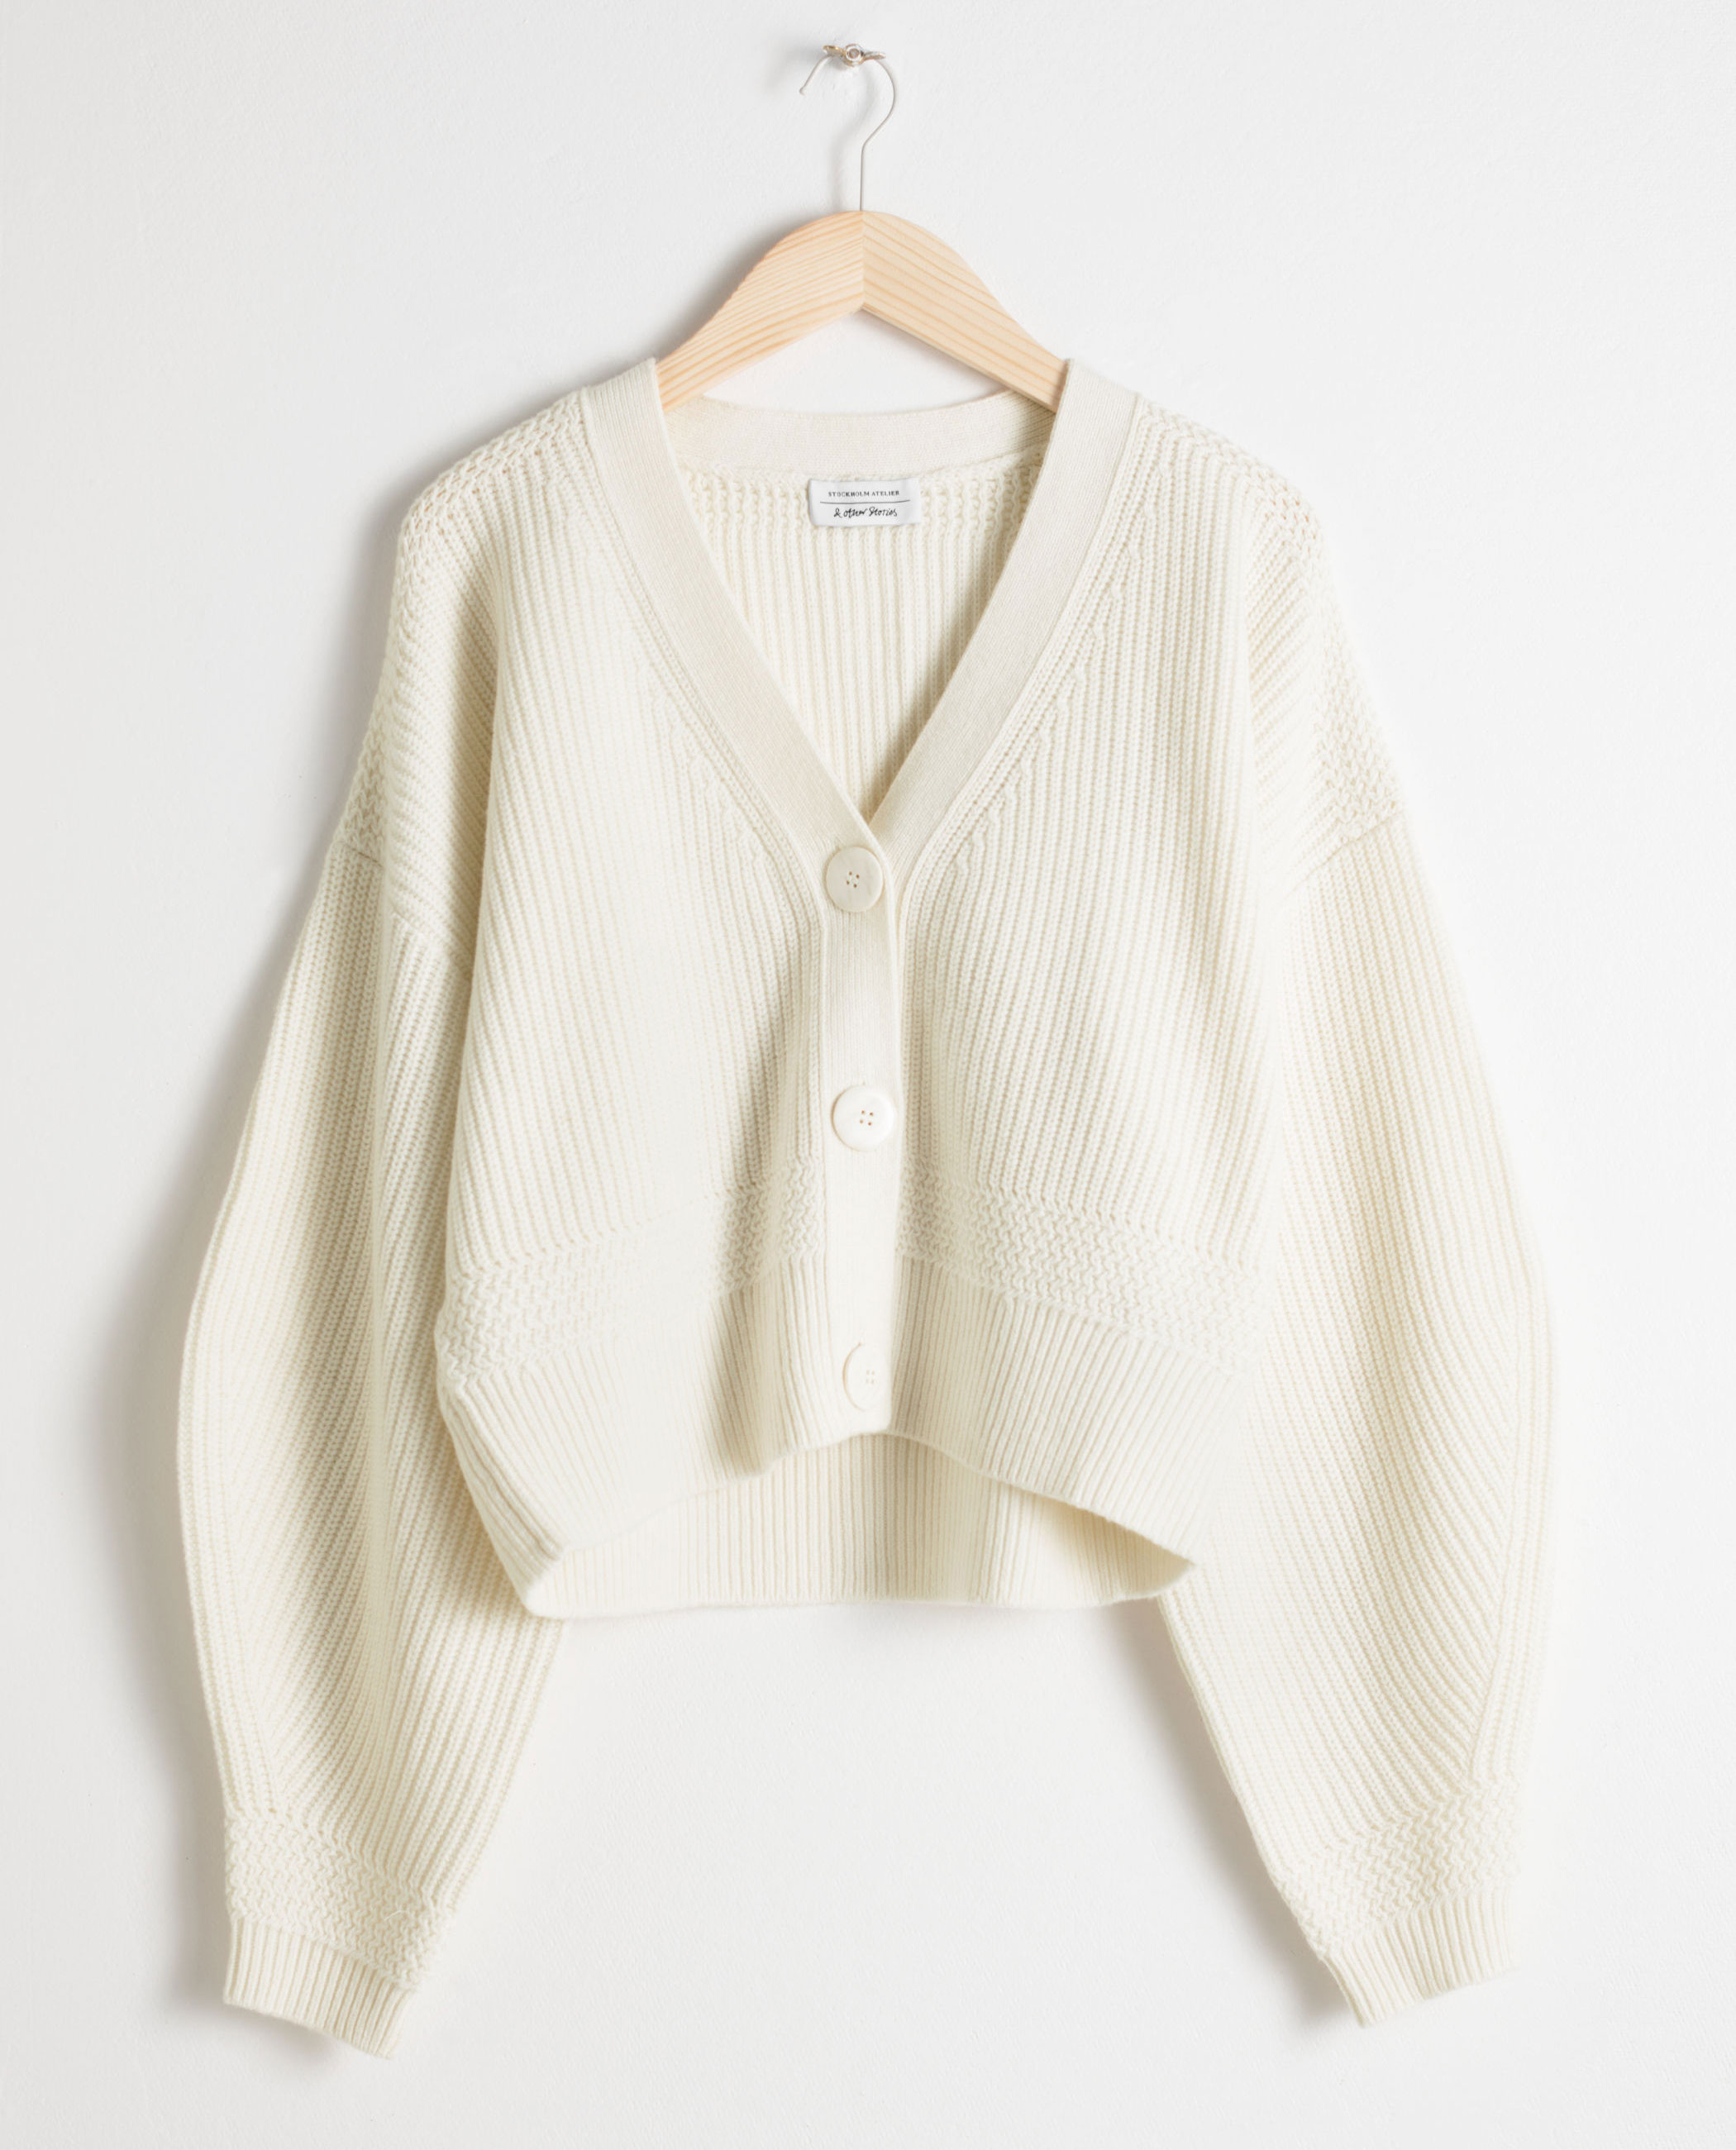 & Other Stories Sweater     $79